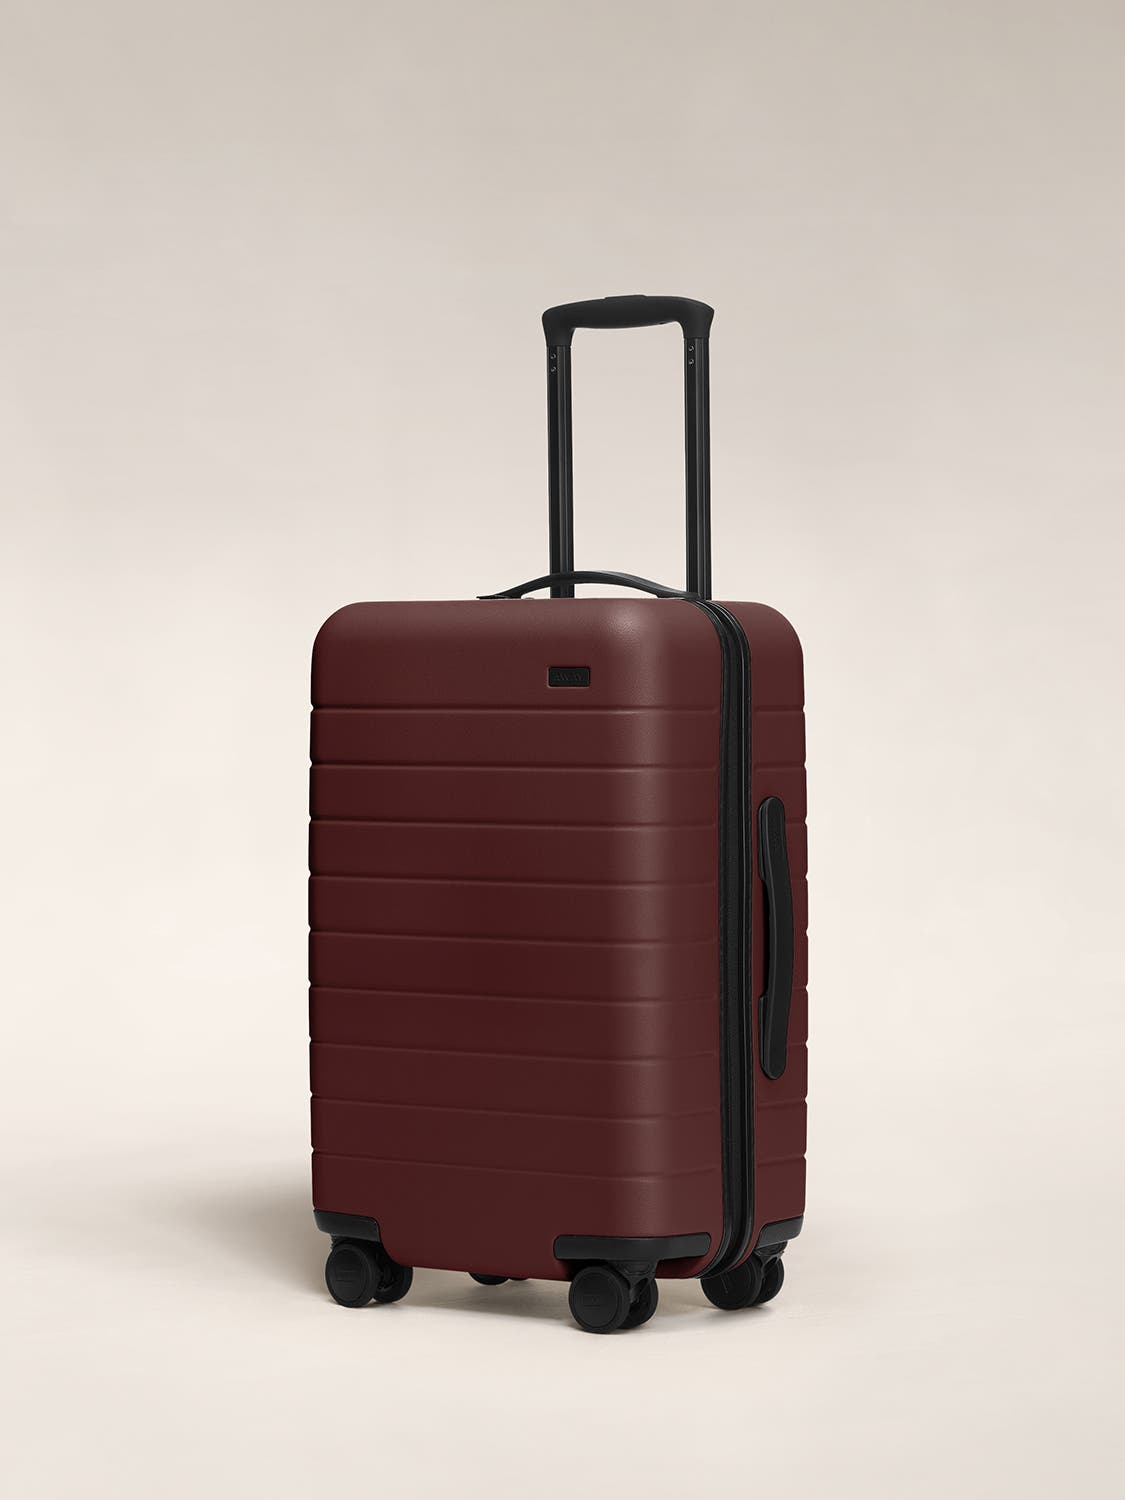 Brick carry-on hardside with raised telescopic handles shown at an angle.